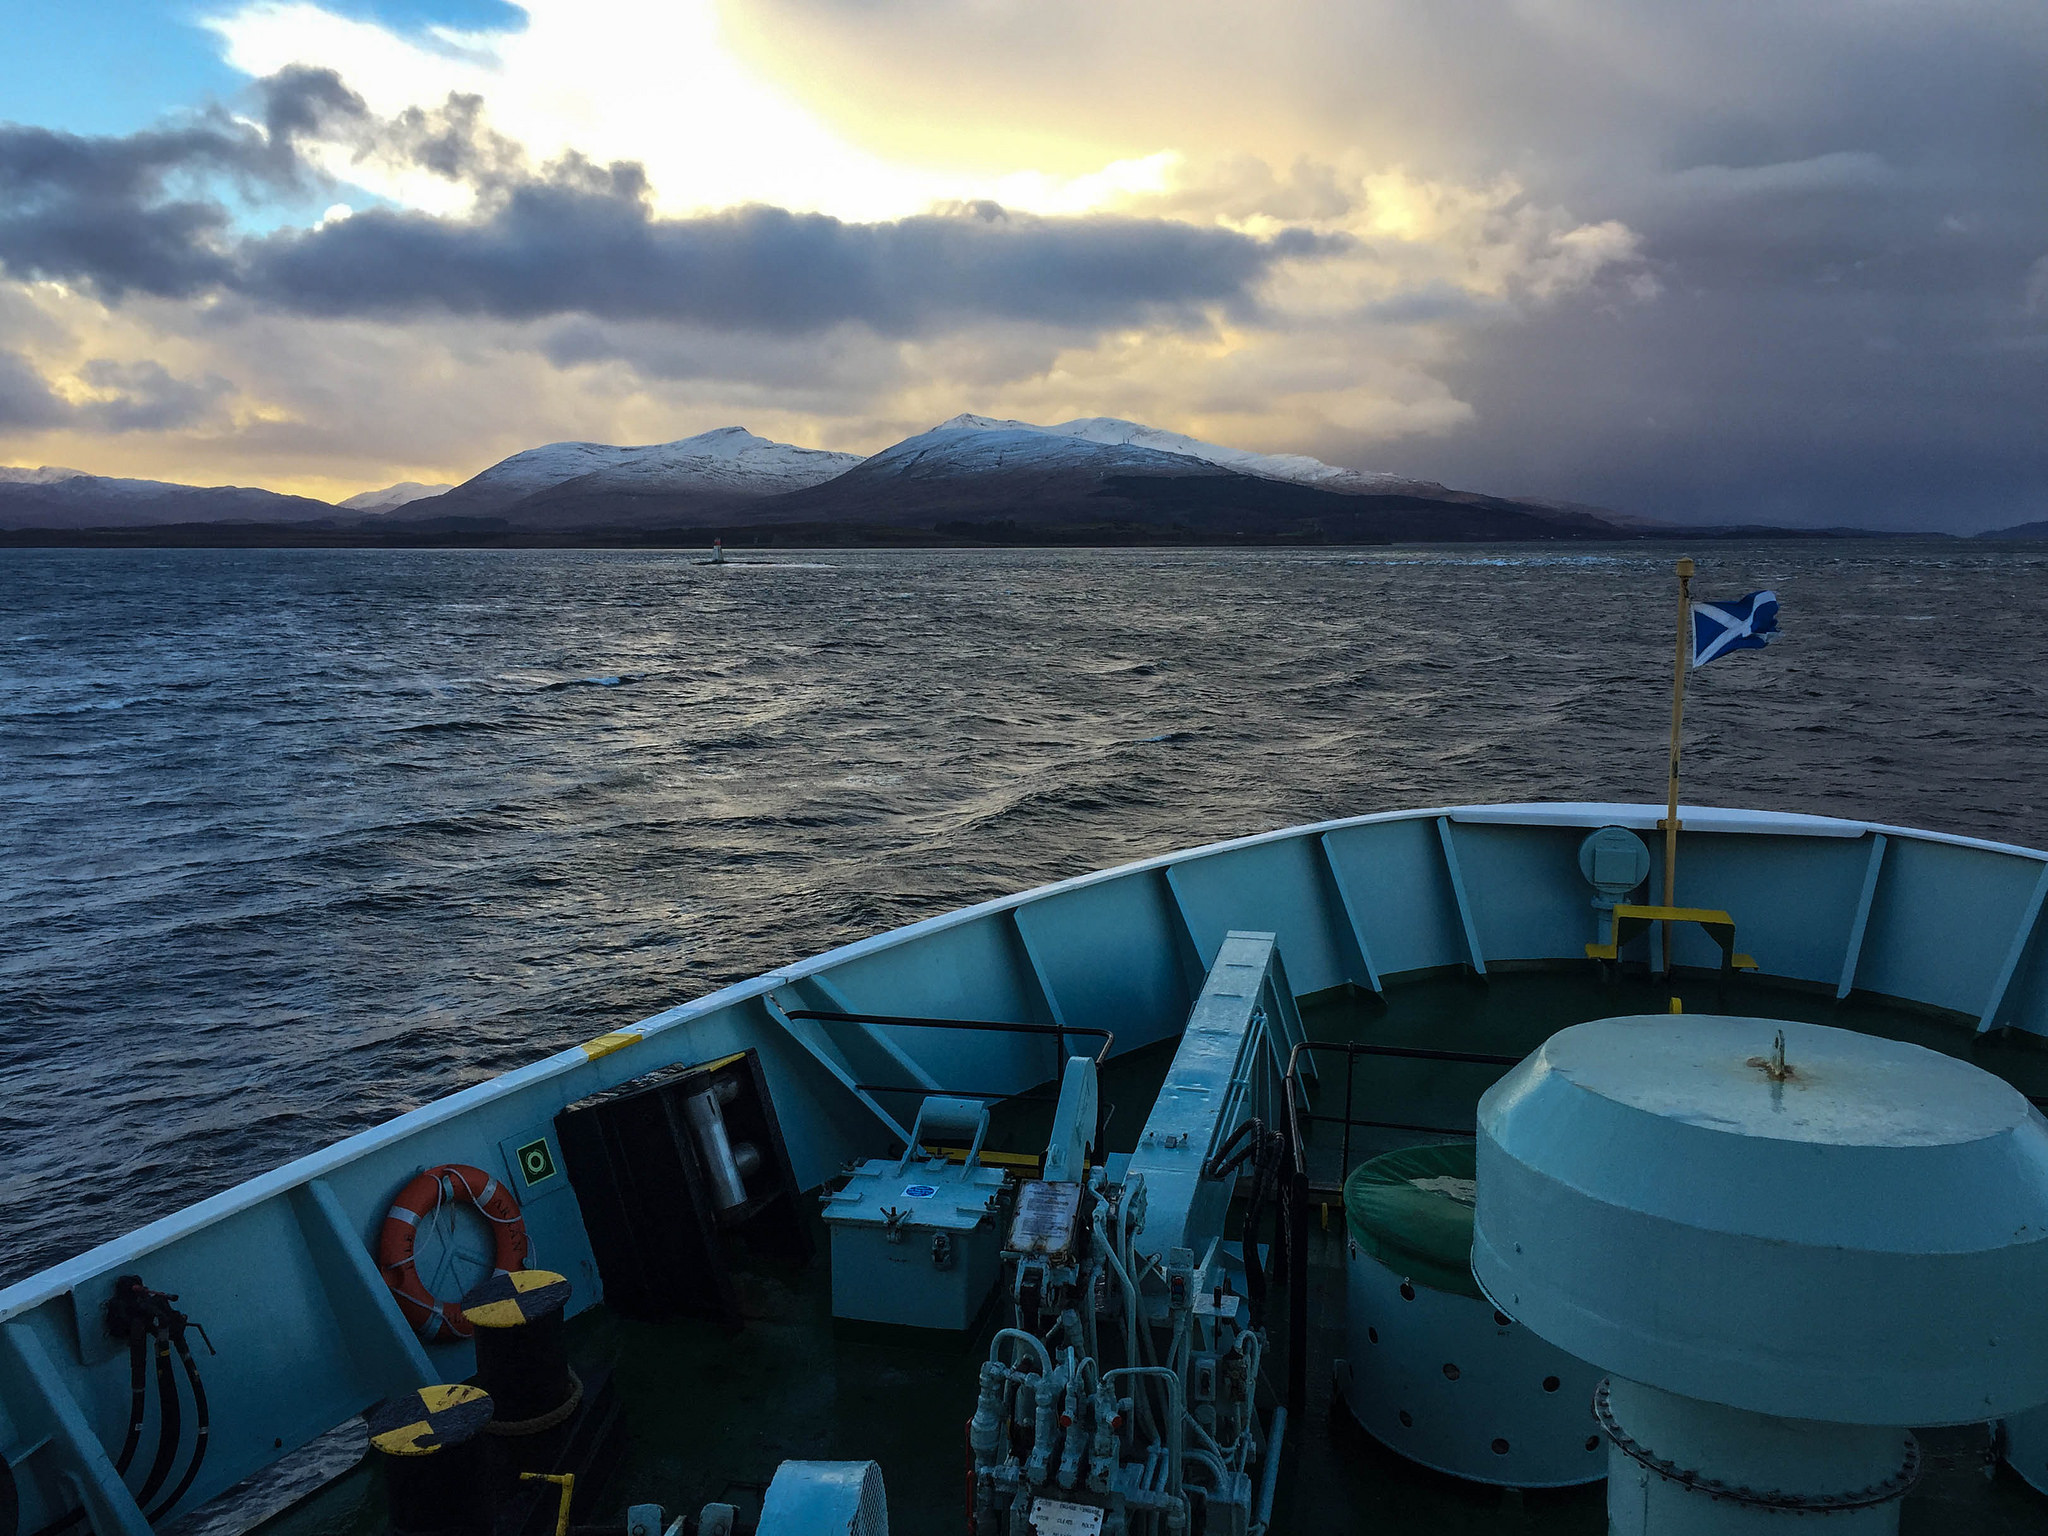 Crossing the Sound of Mull.